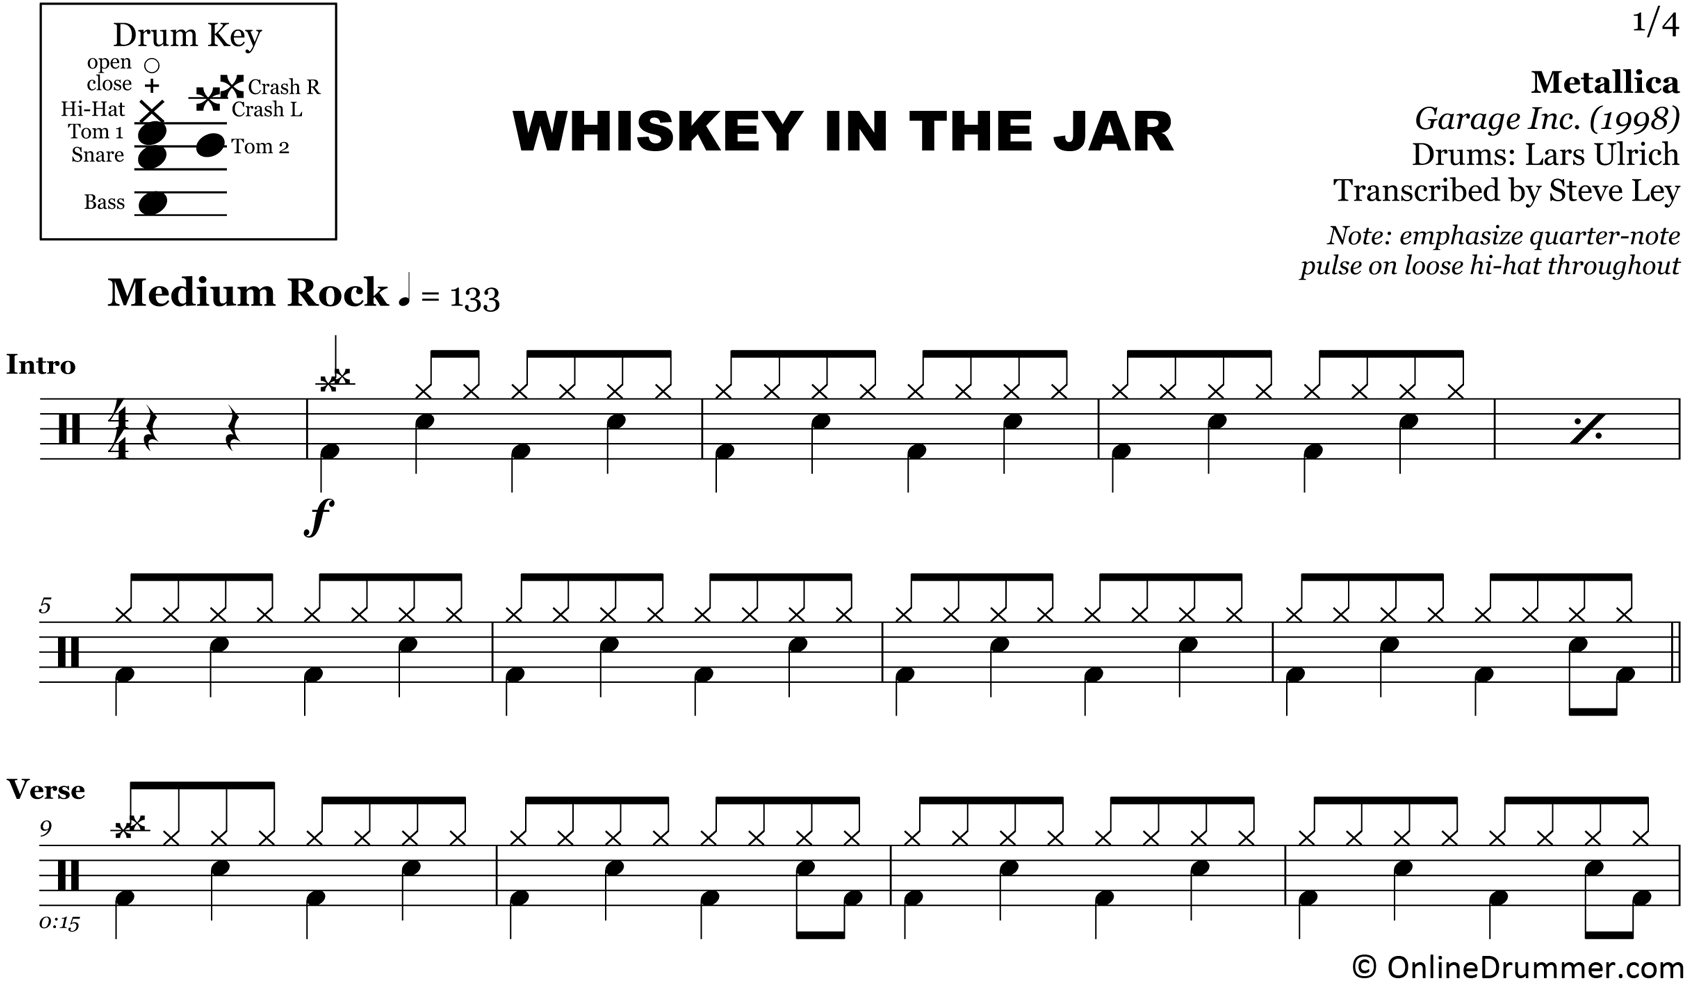 Whiskey in the Jar - Metallica - Drum Sheet Music